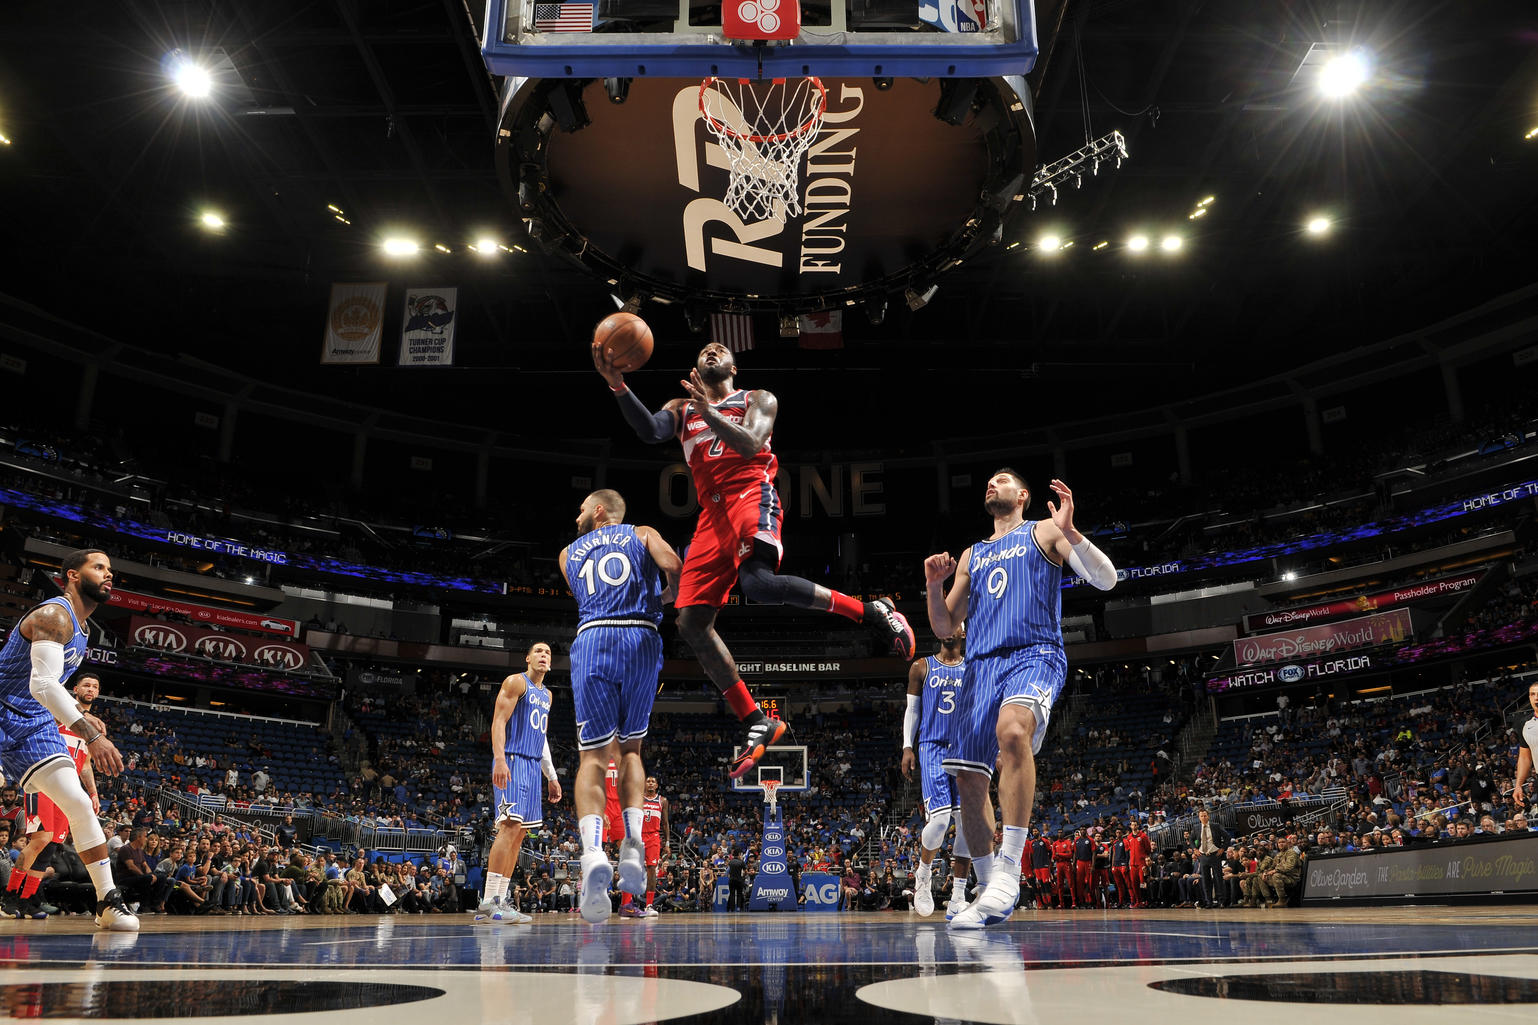 Late rally not enough as Wizards lose to Magic 117-108